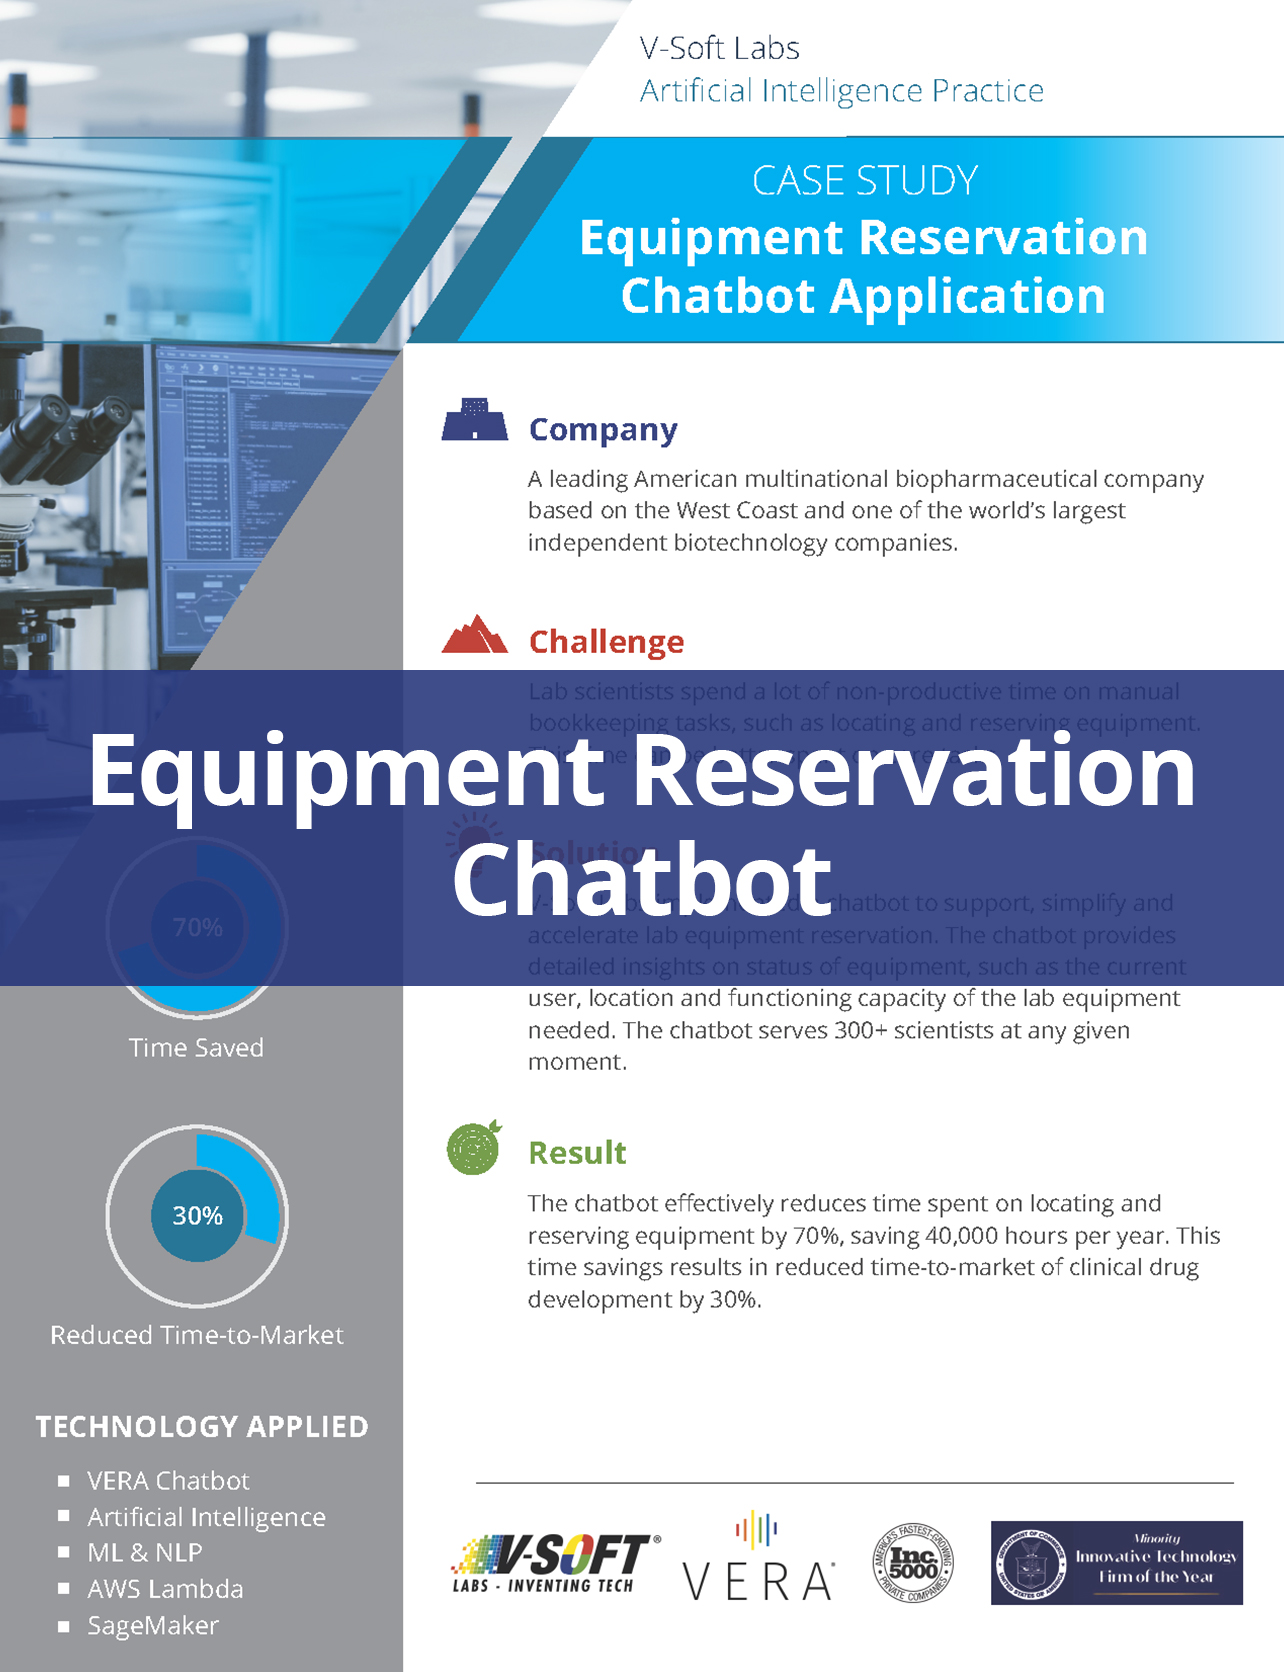 Equipment Reservation Chatbot